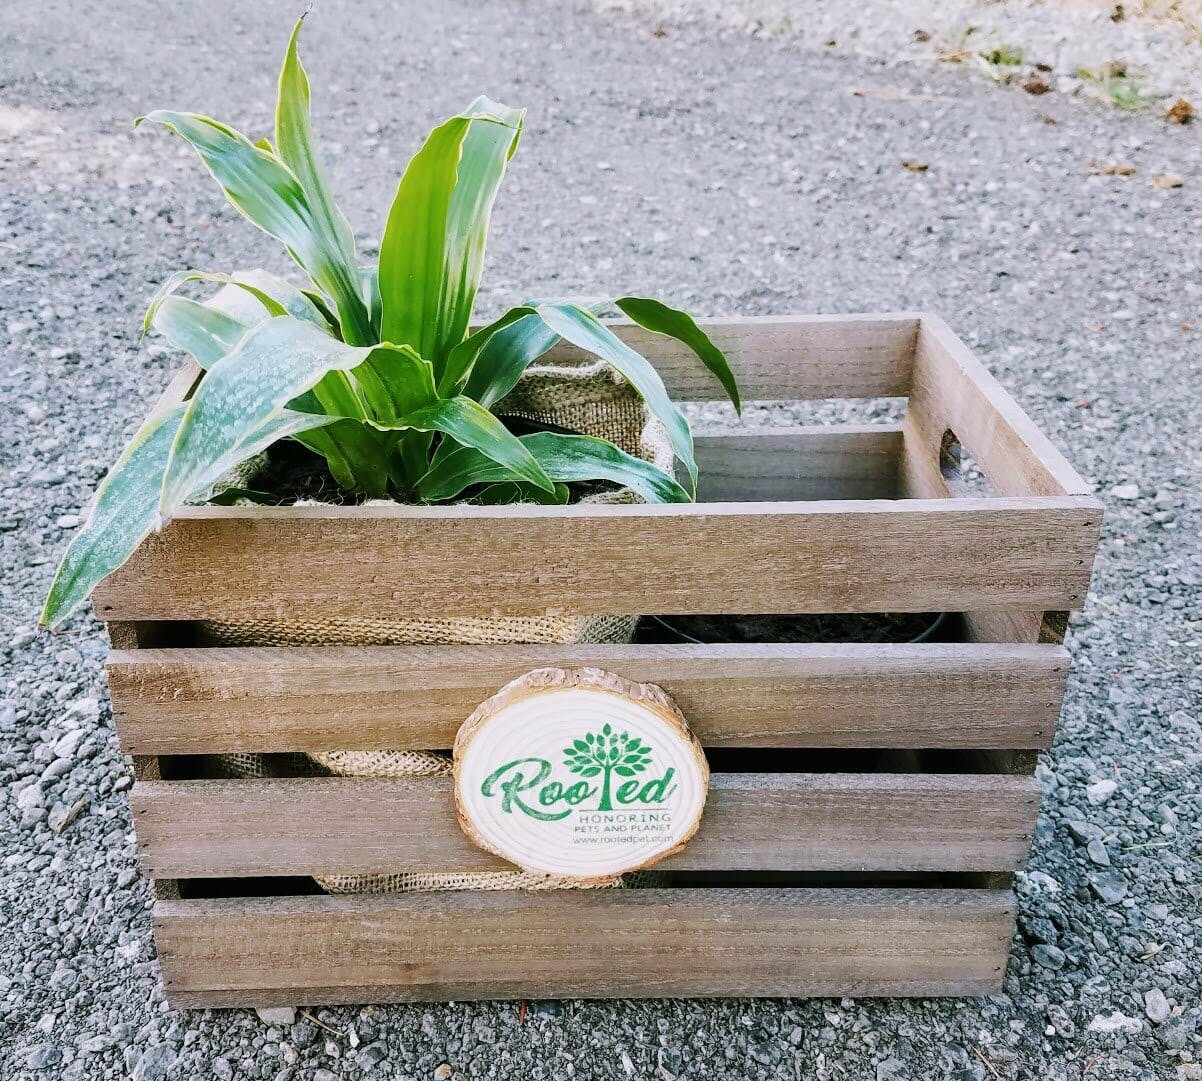 Rooted pet crate